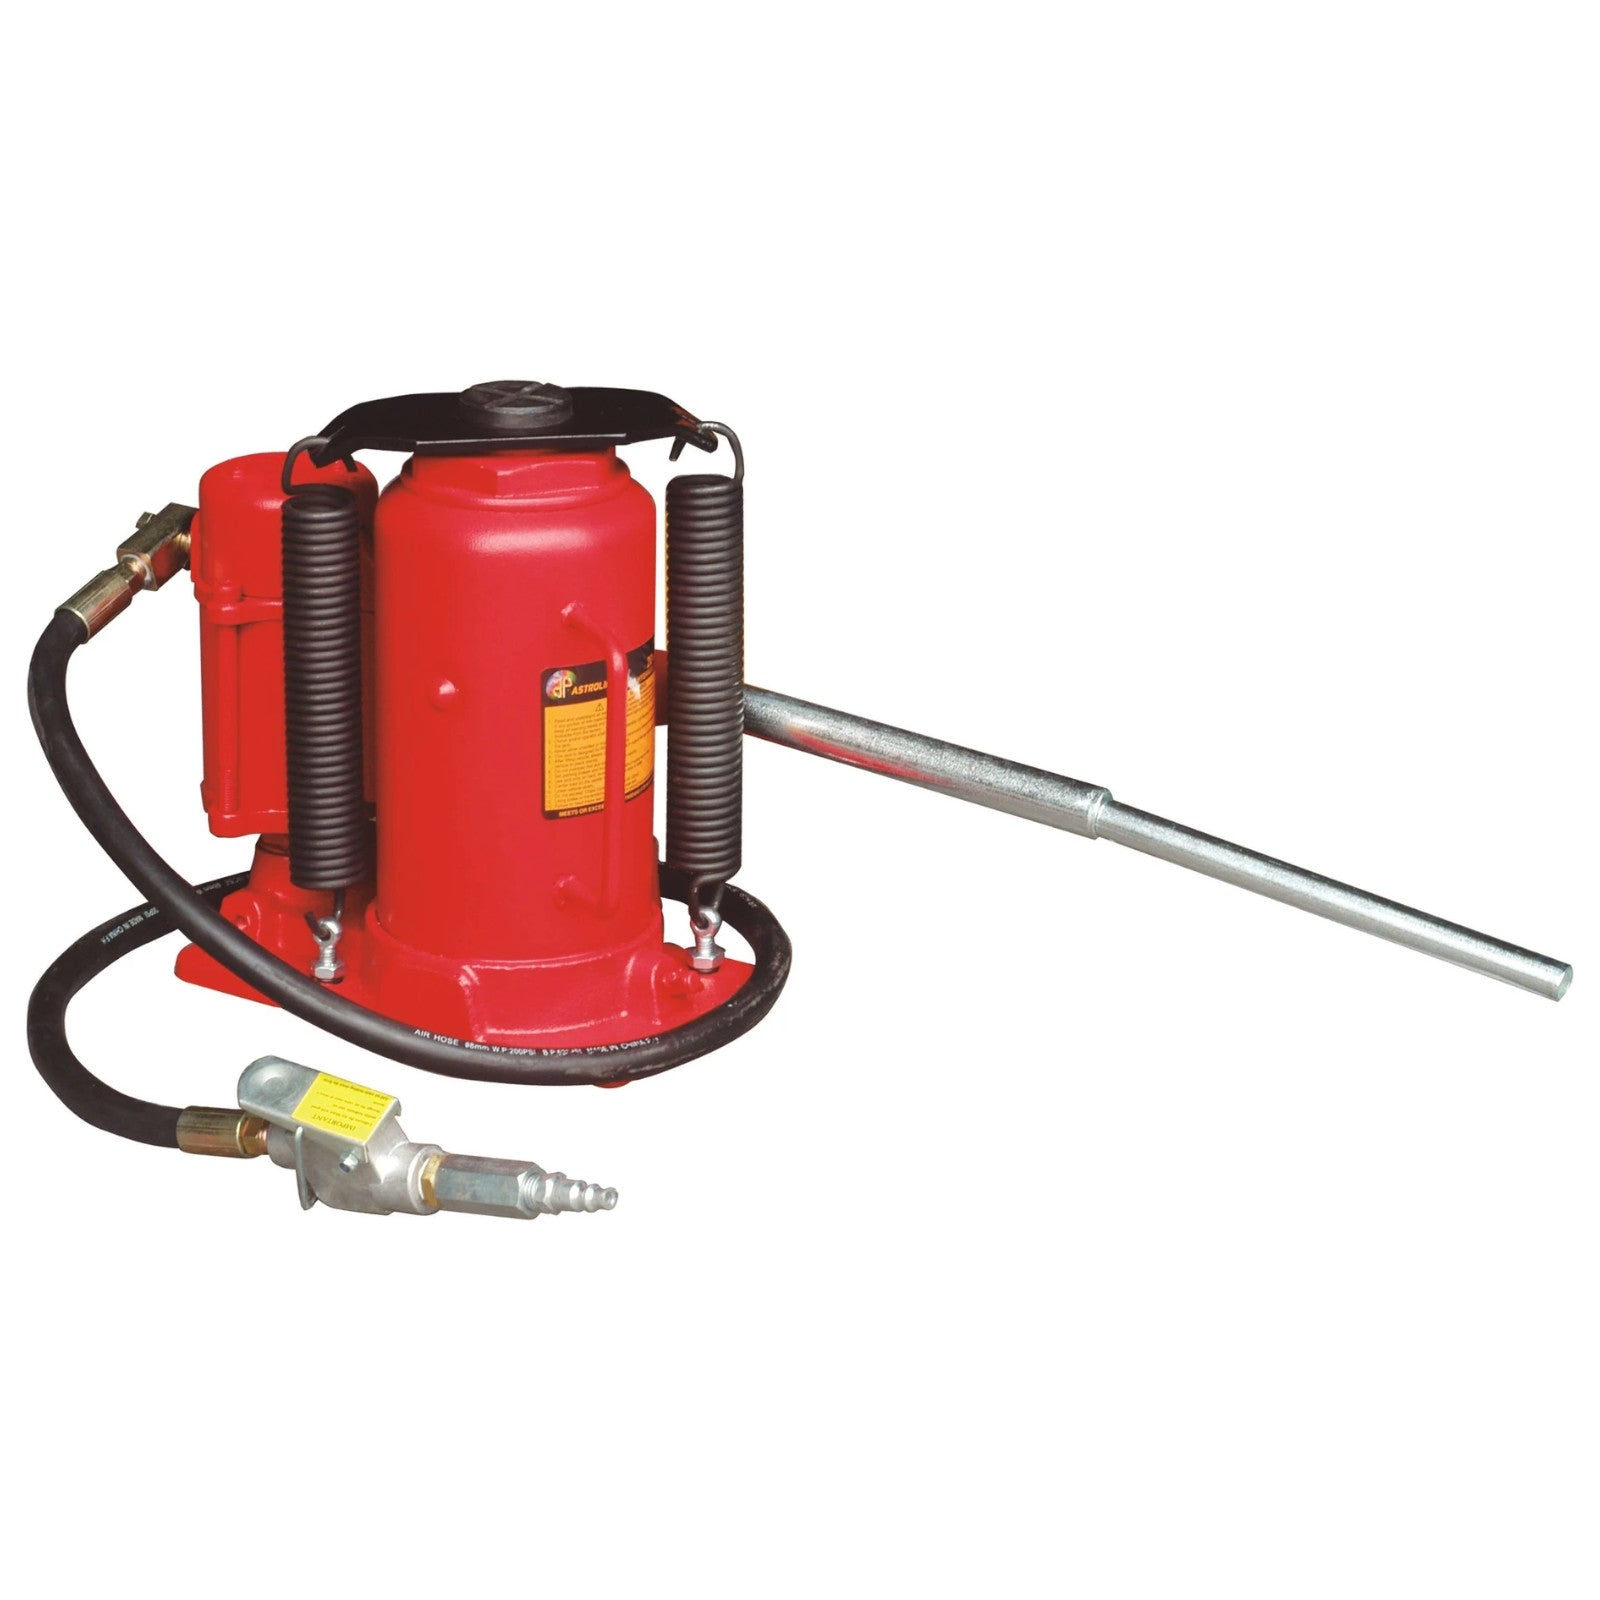 Astro 5302 - 20 Ton Air/Hydraulic Bottle Jack